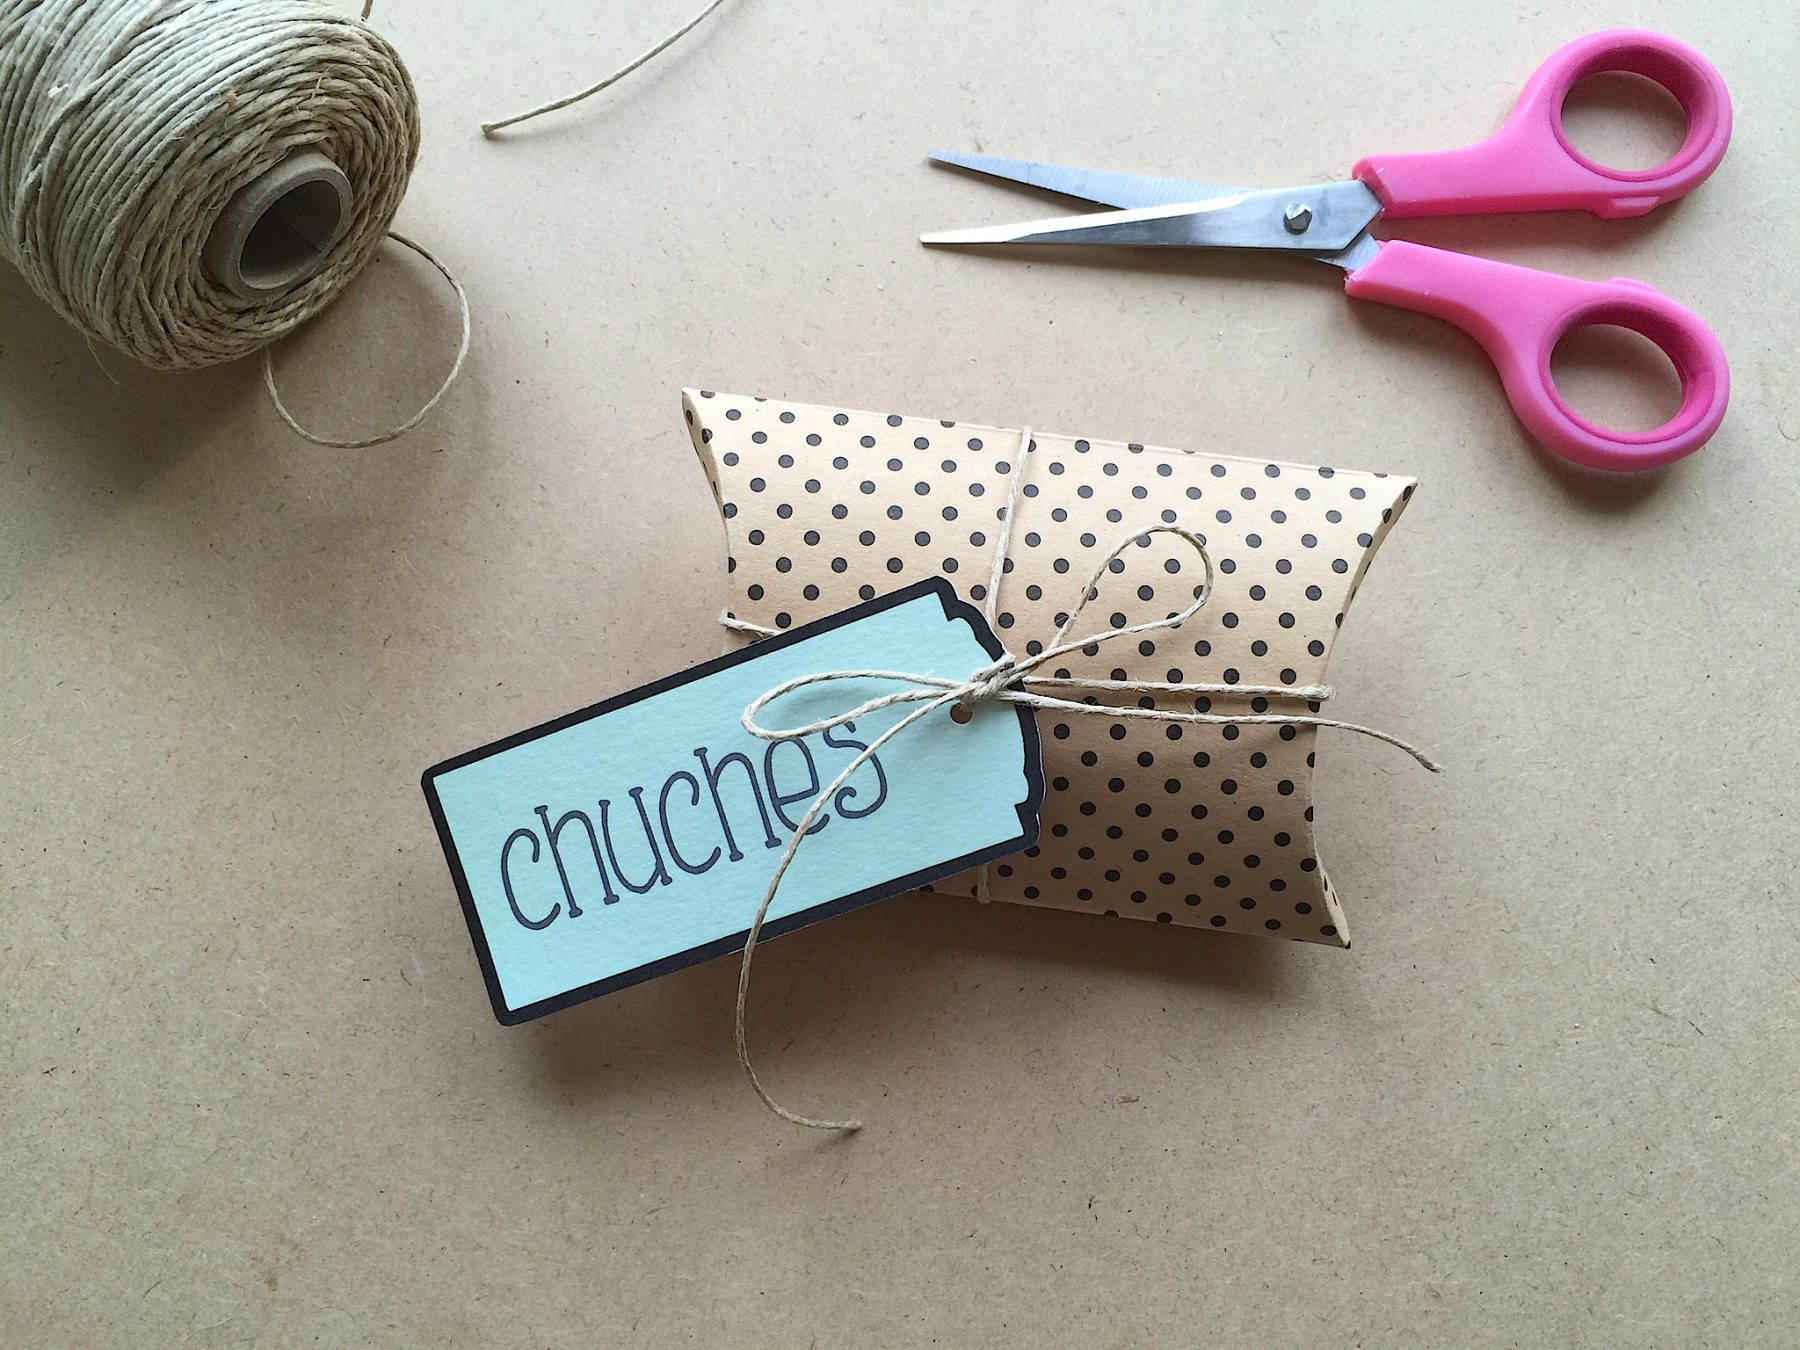 Tutorial manualidades DIY cajitas